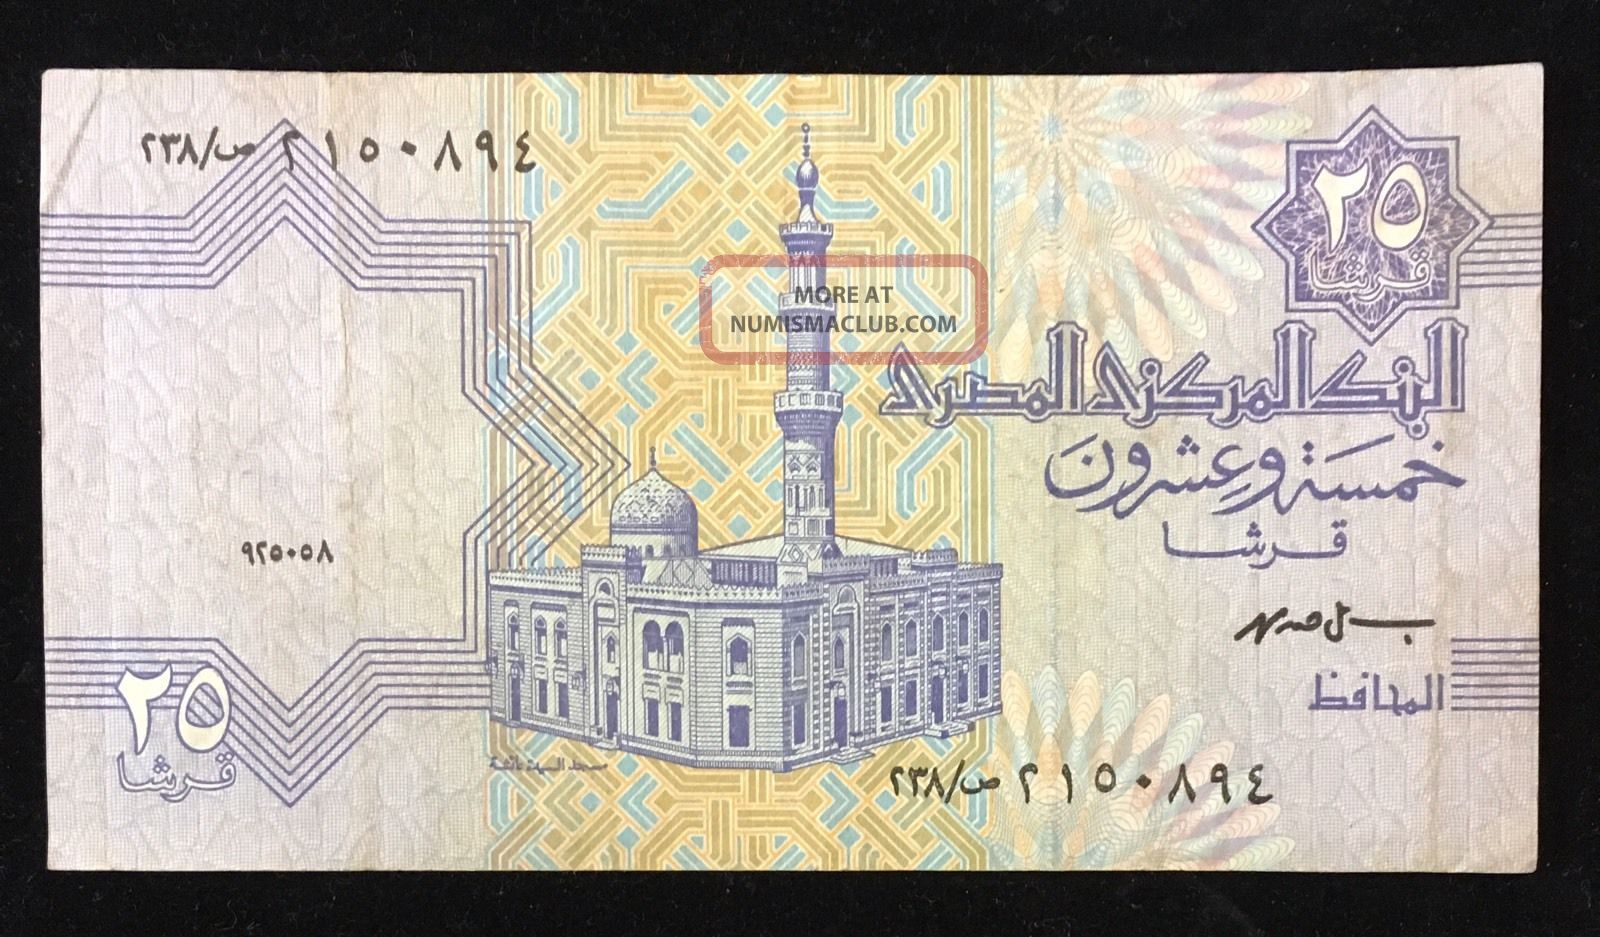 Egypt 25 Piasters Unc Banknote Central Bank Of Egypt Africa photo